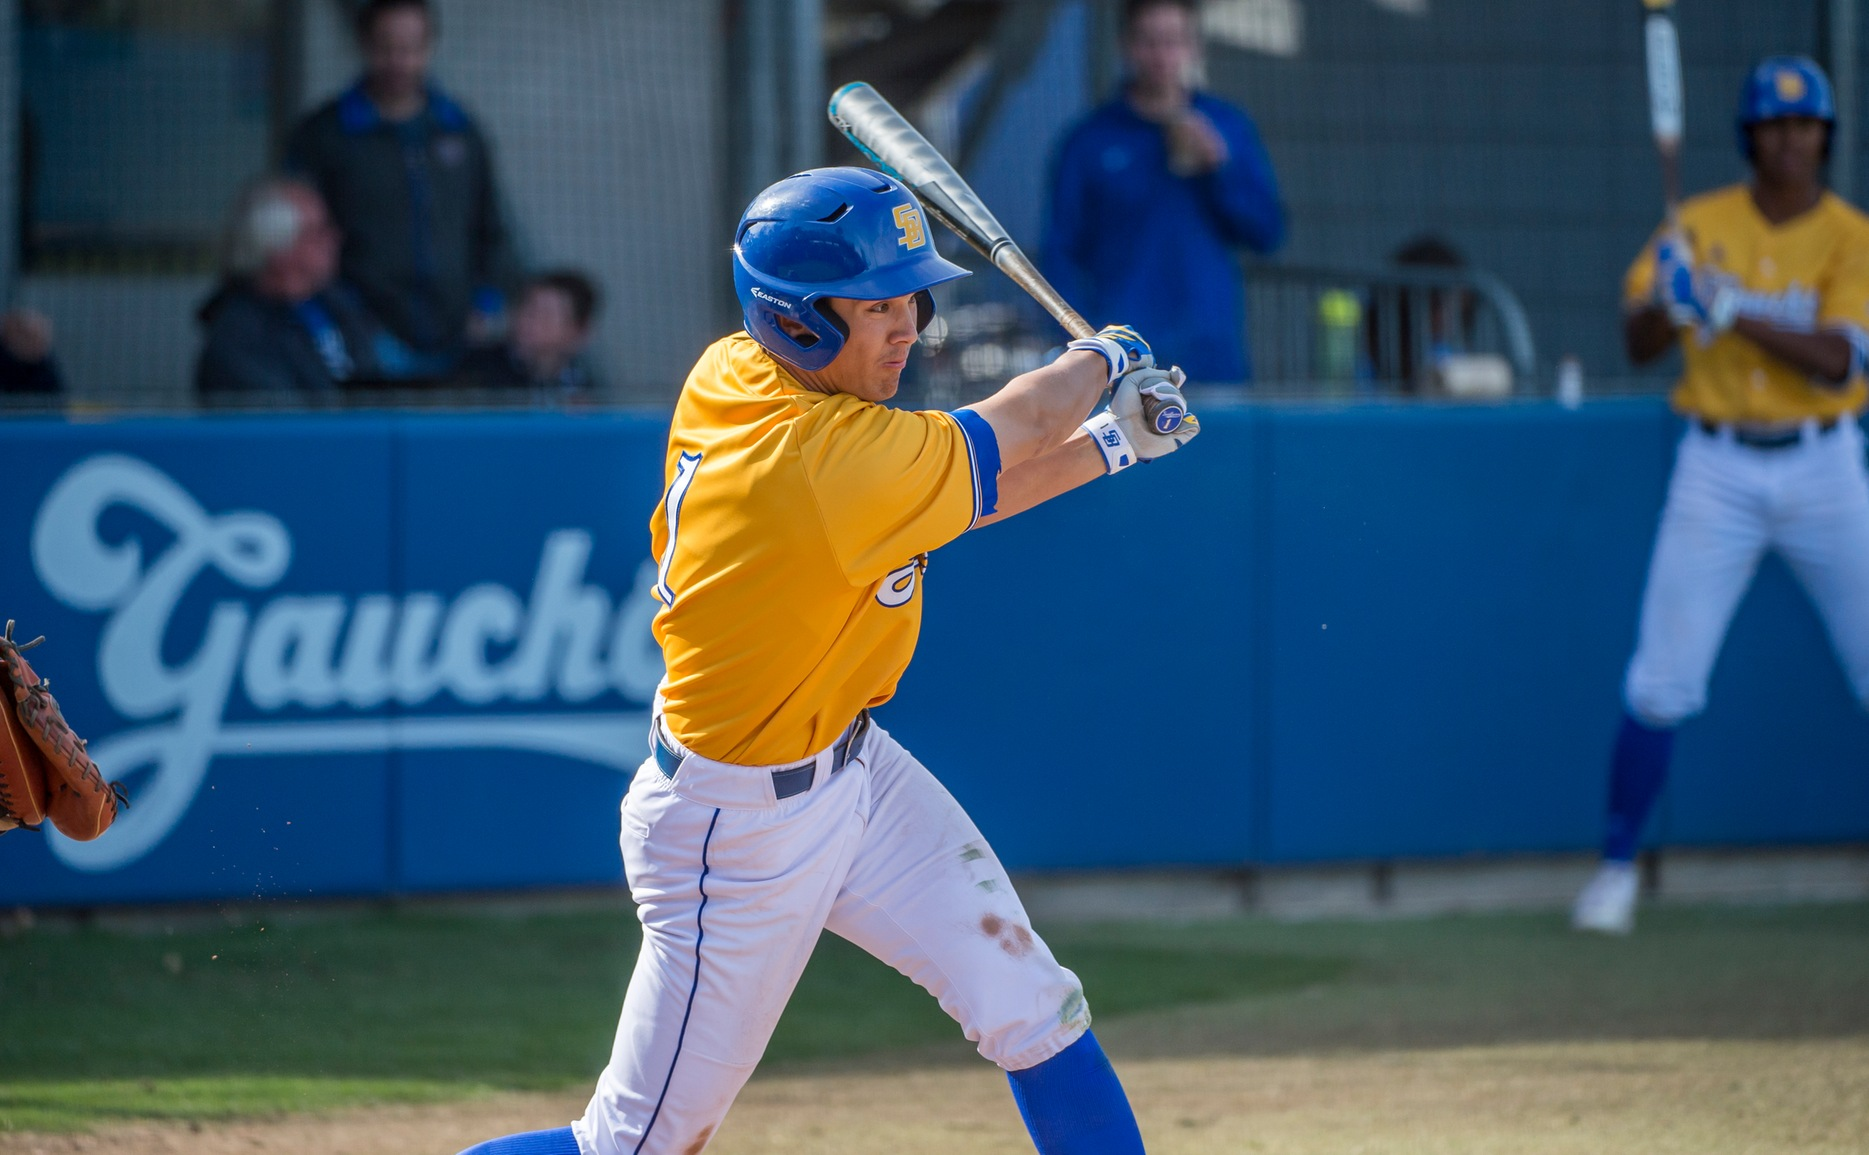 Tommy Jew was 4-for-4 with 2 runs, 5 RBI and a walk in Saturday's 14-2 Gaucho win over UC Riverside. Jew is 8-for-9 in the first two games of the series. (Photo by Eric Isaacs)